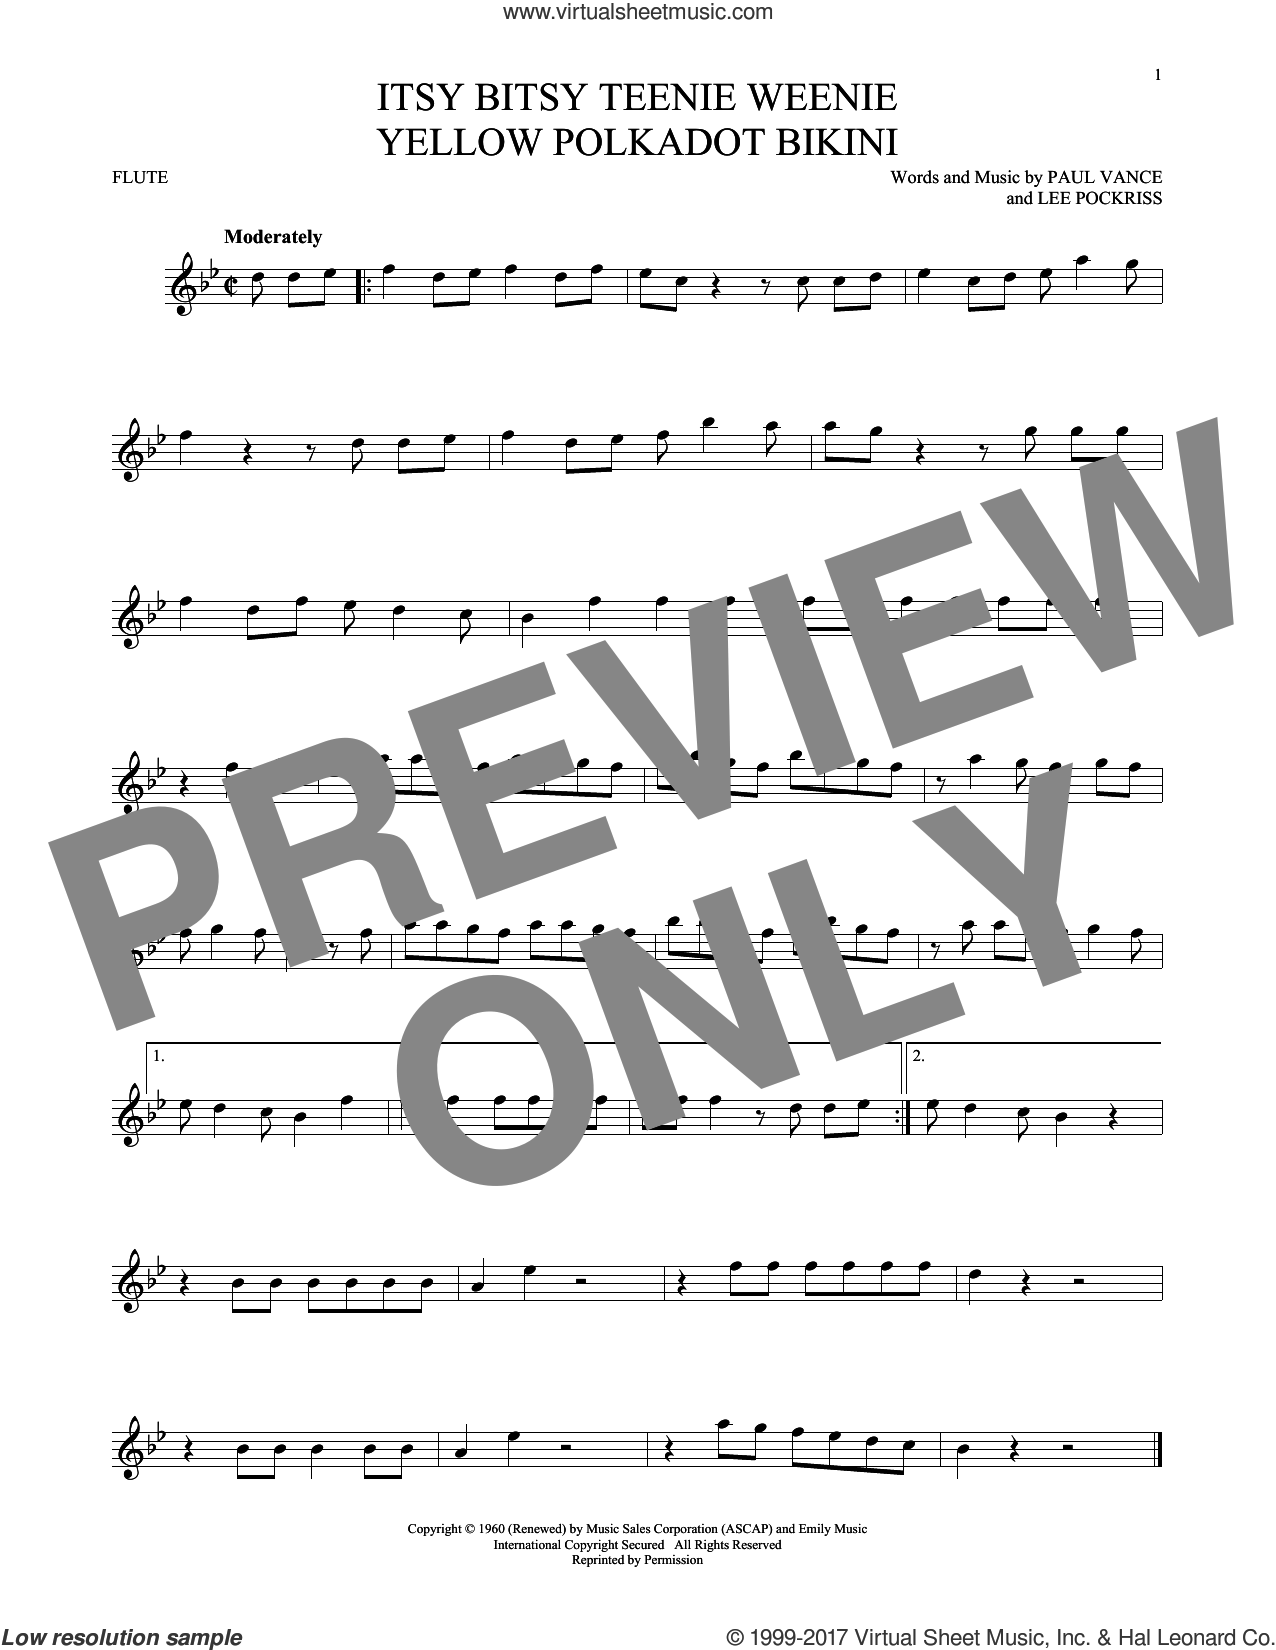 Itsy Bitsy Teenie Weenie Yellow Polkadot Bikini sheet music for flute solo by Brian Hyland, Lee Pockriss and Paul Vance, intermediate skill level